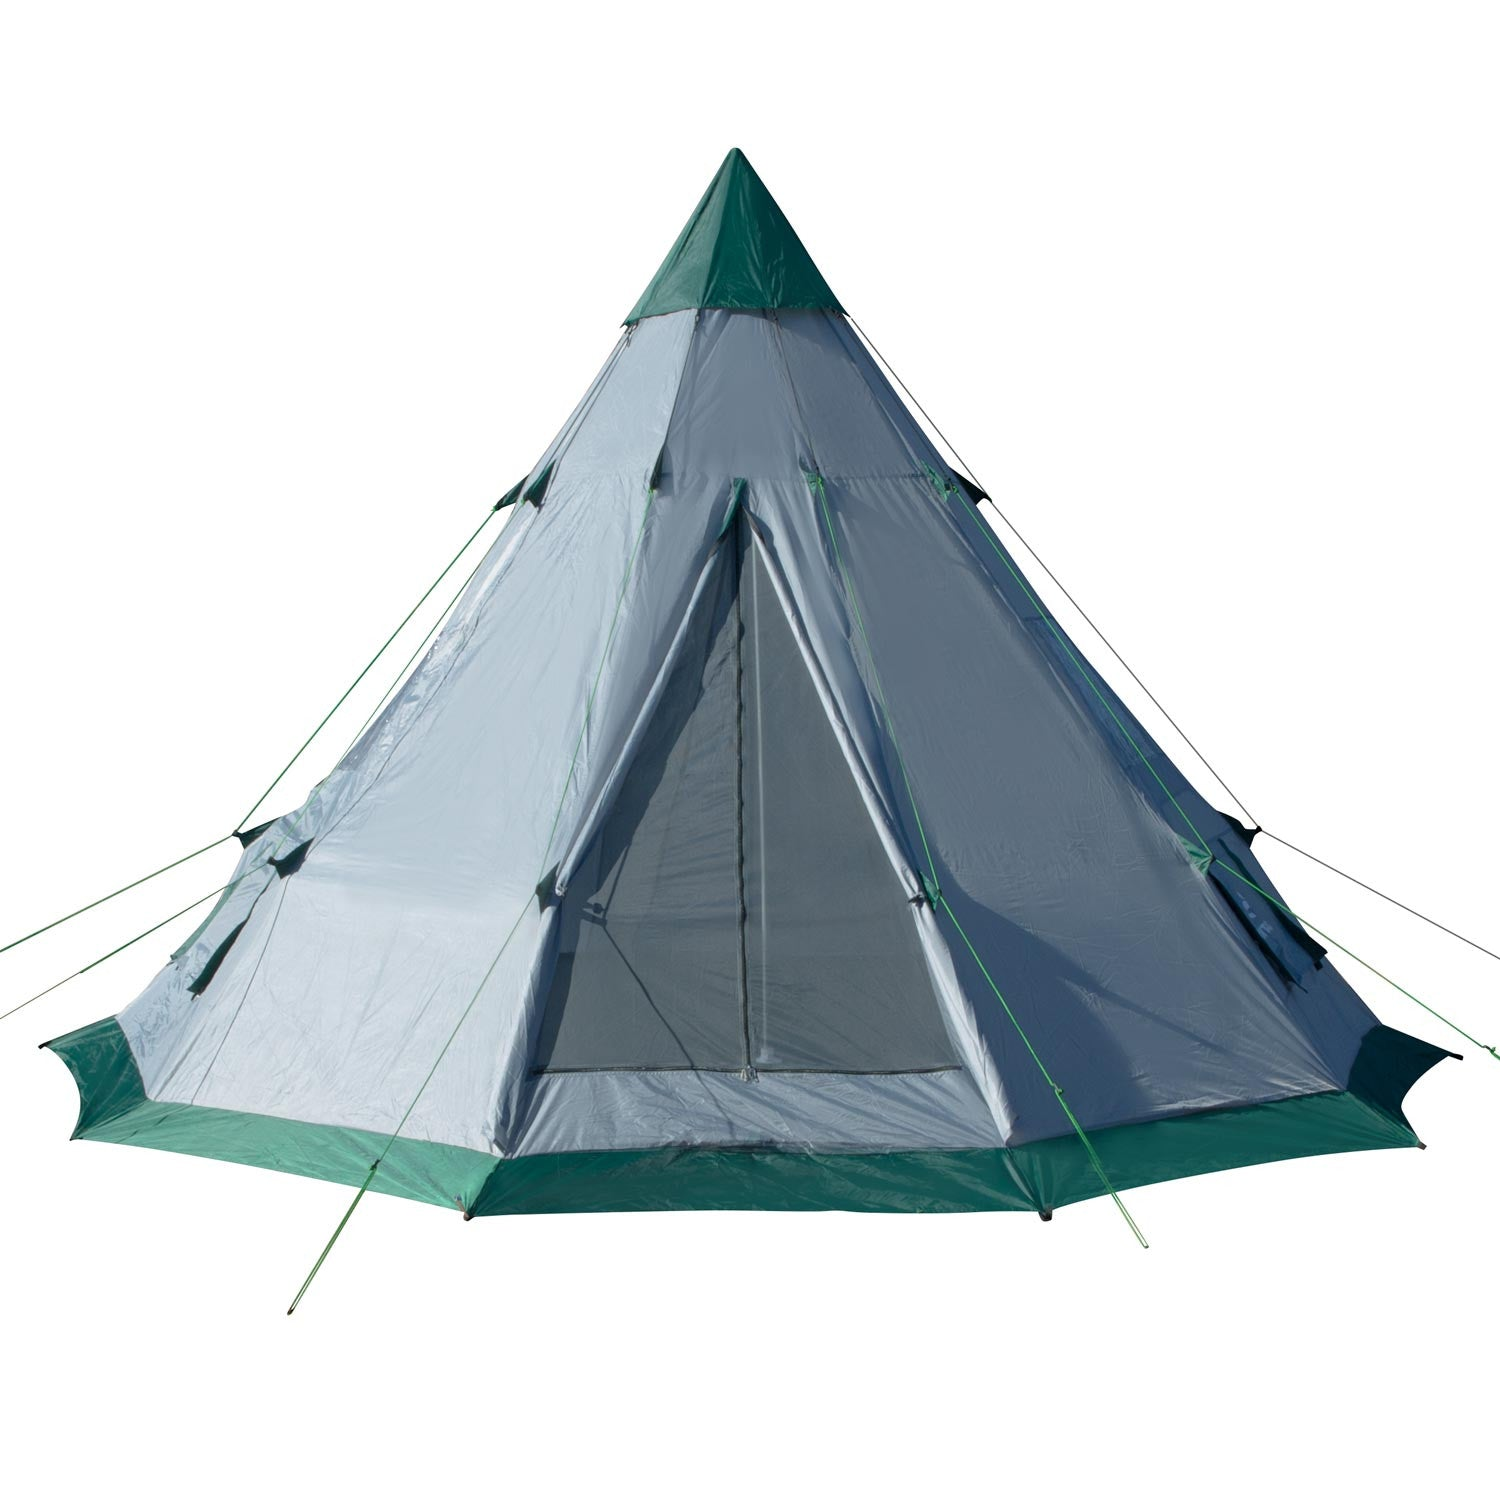 ... teepee tent family tent for c&ing  sc 1 st  Winterial.com : teepee tents for adults - memphite.com